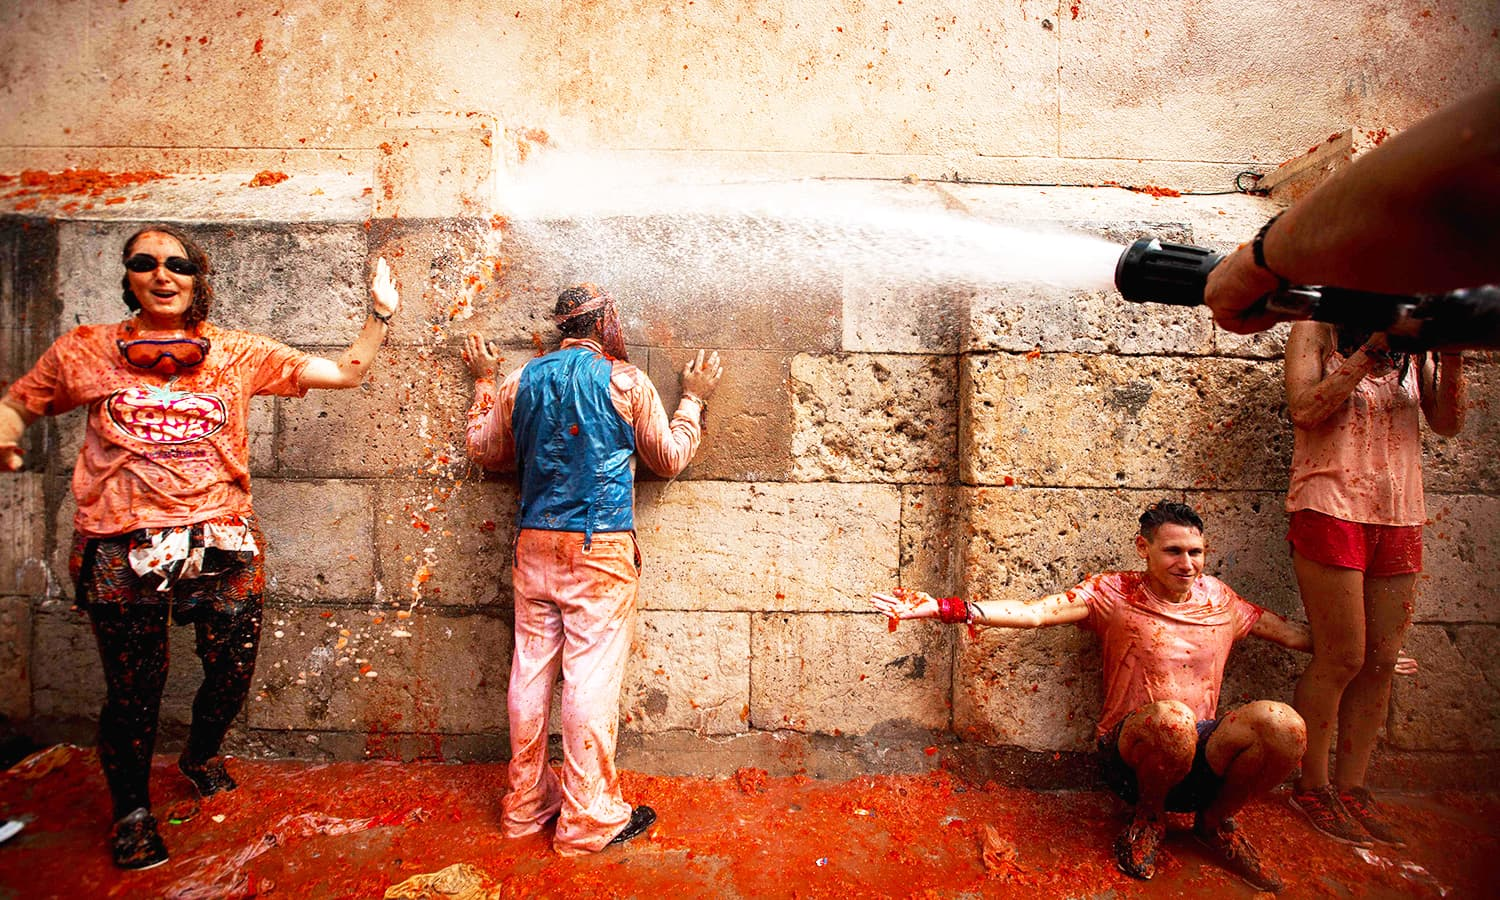 Revellers covered in tomato pulp are hosed down. — AFP